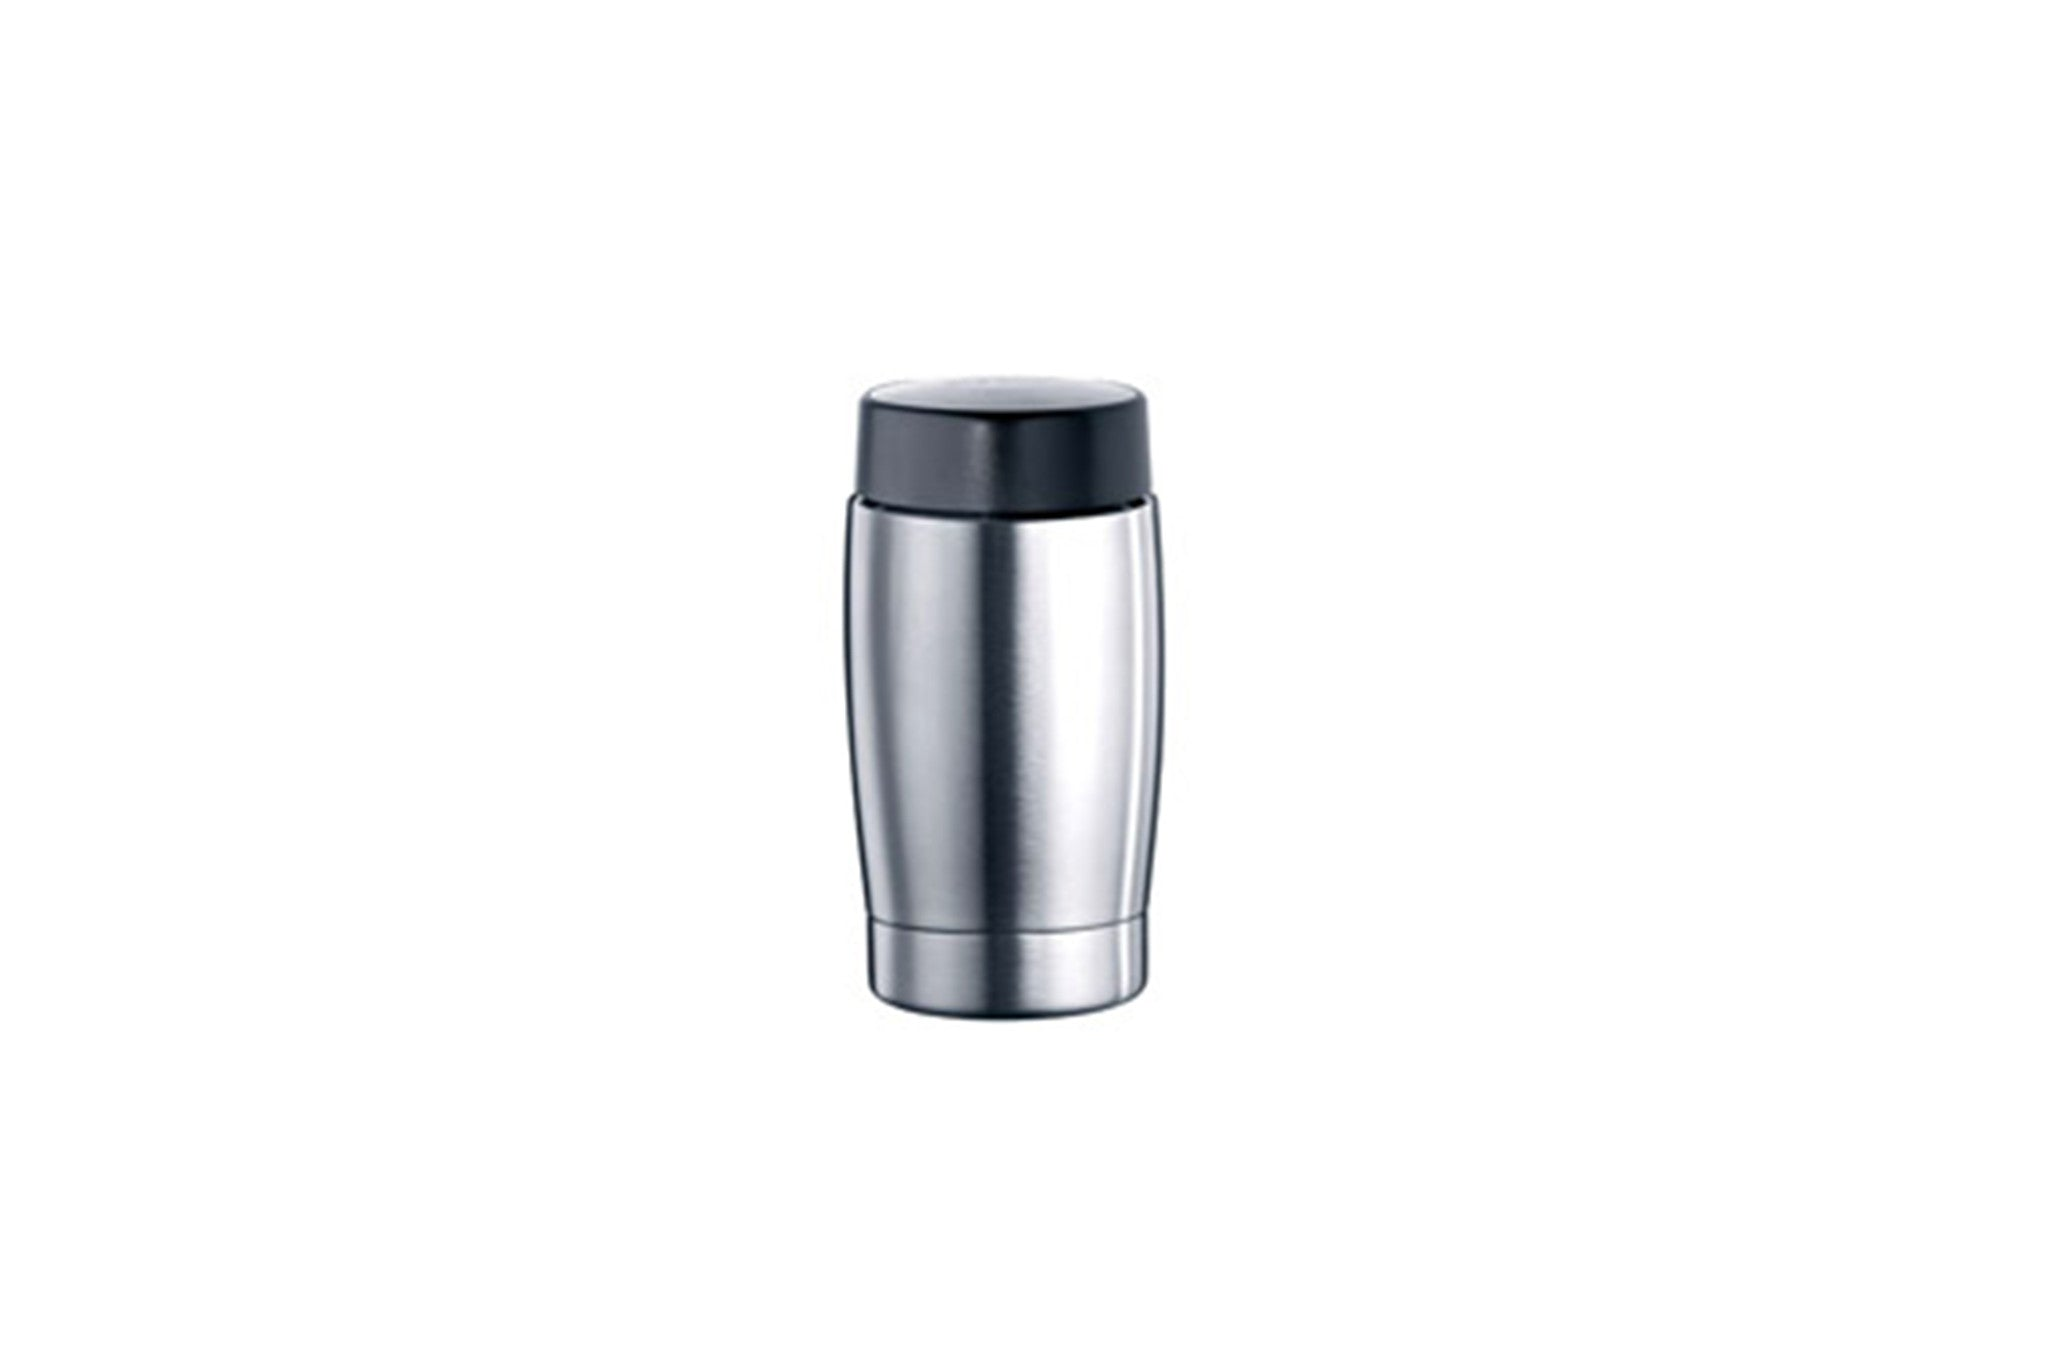 Melkkan Inox - ROSS COFFEE & SPECIALTIES